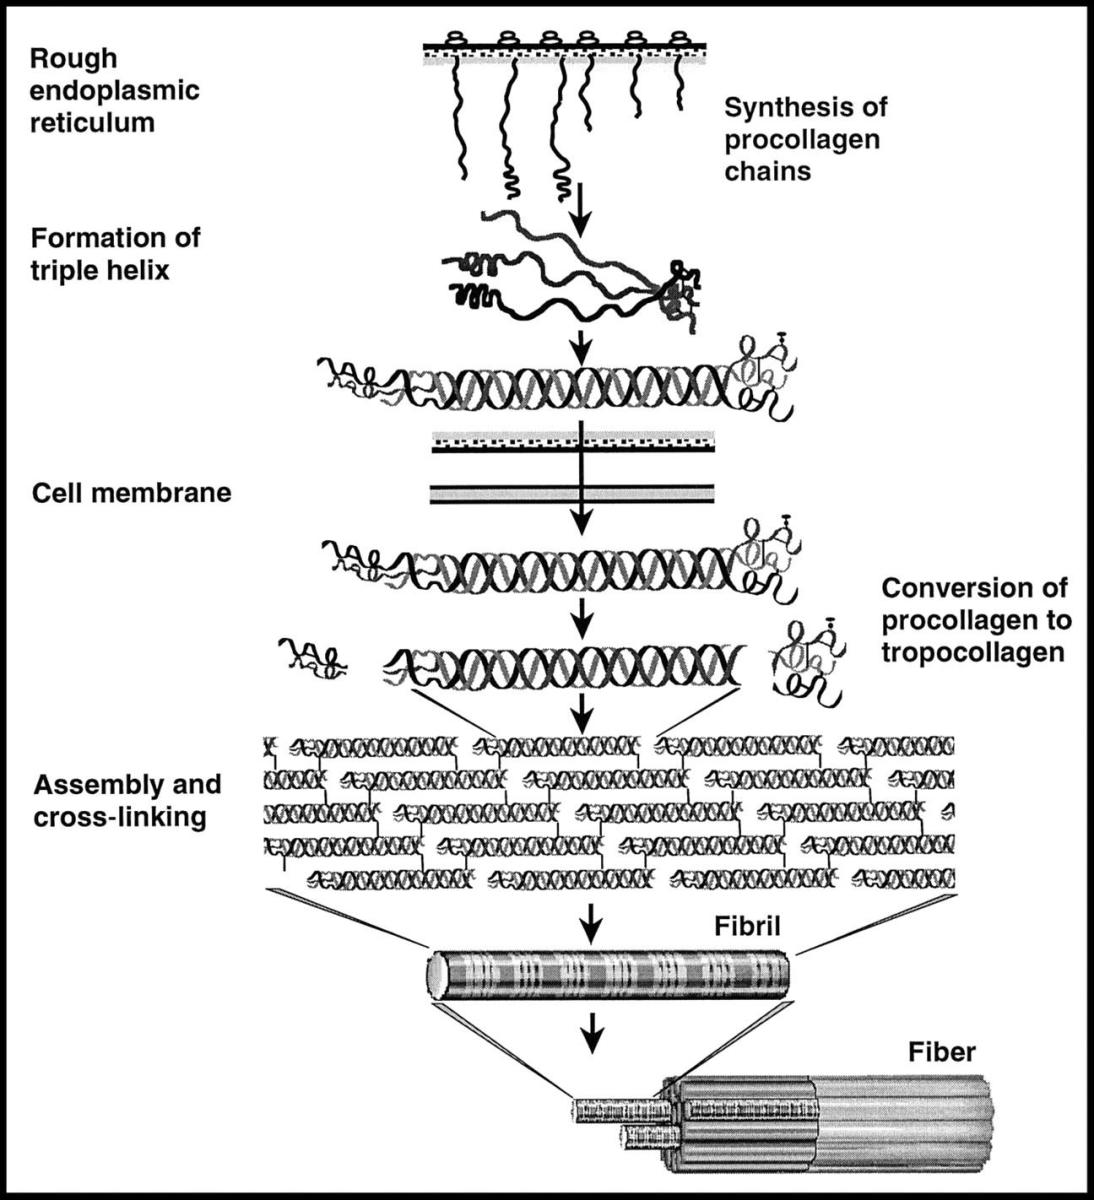 How the collagen protein is assembled from mRNA to a fiber.